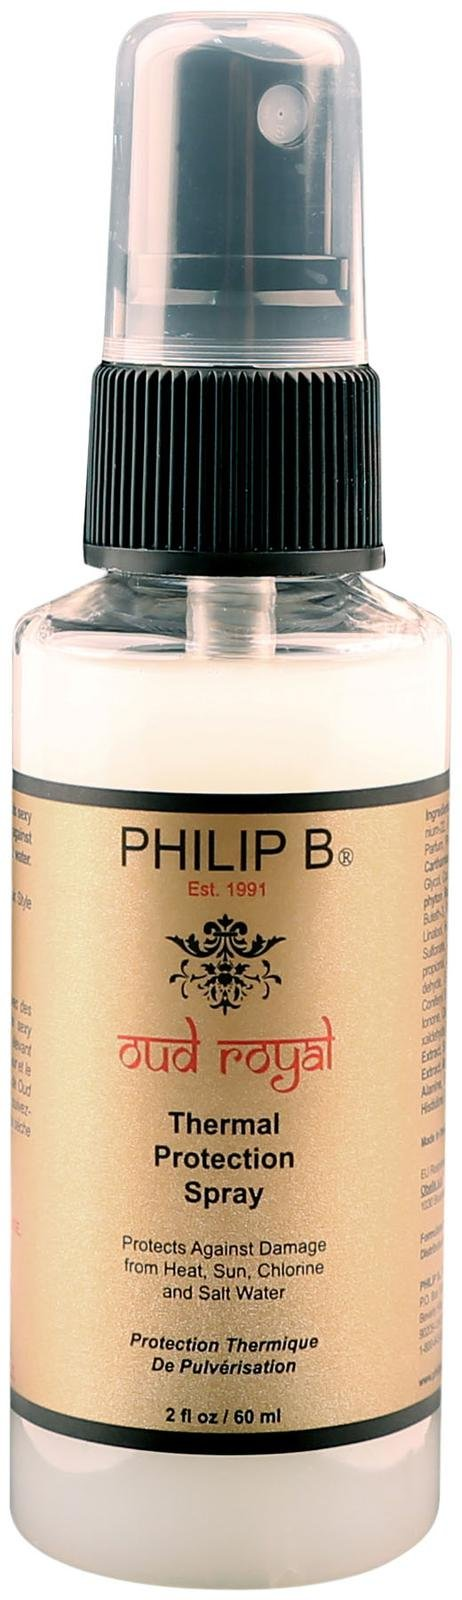 Philip B. Oud Royal Thermal Protection Spray (2 Oz)